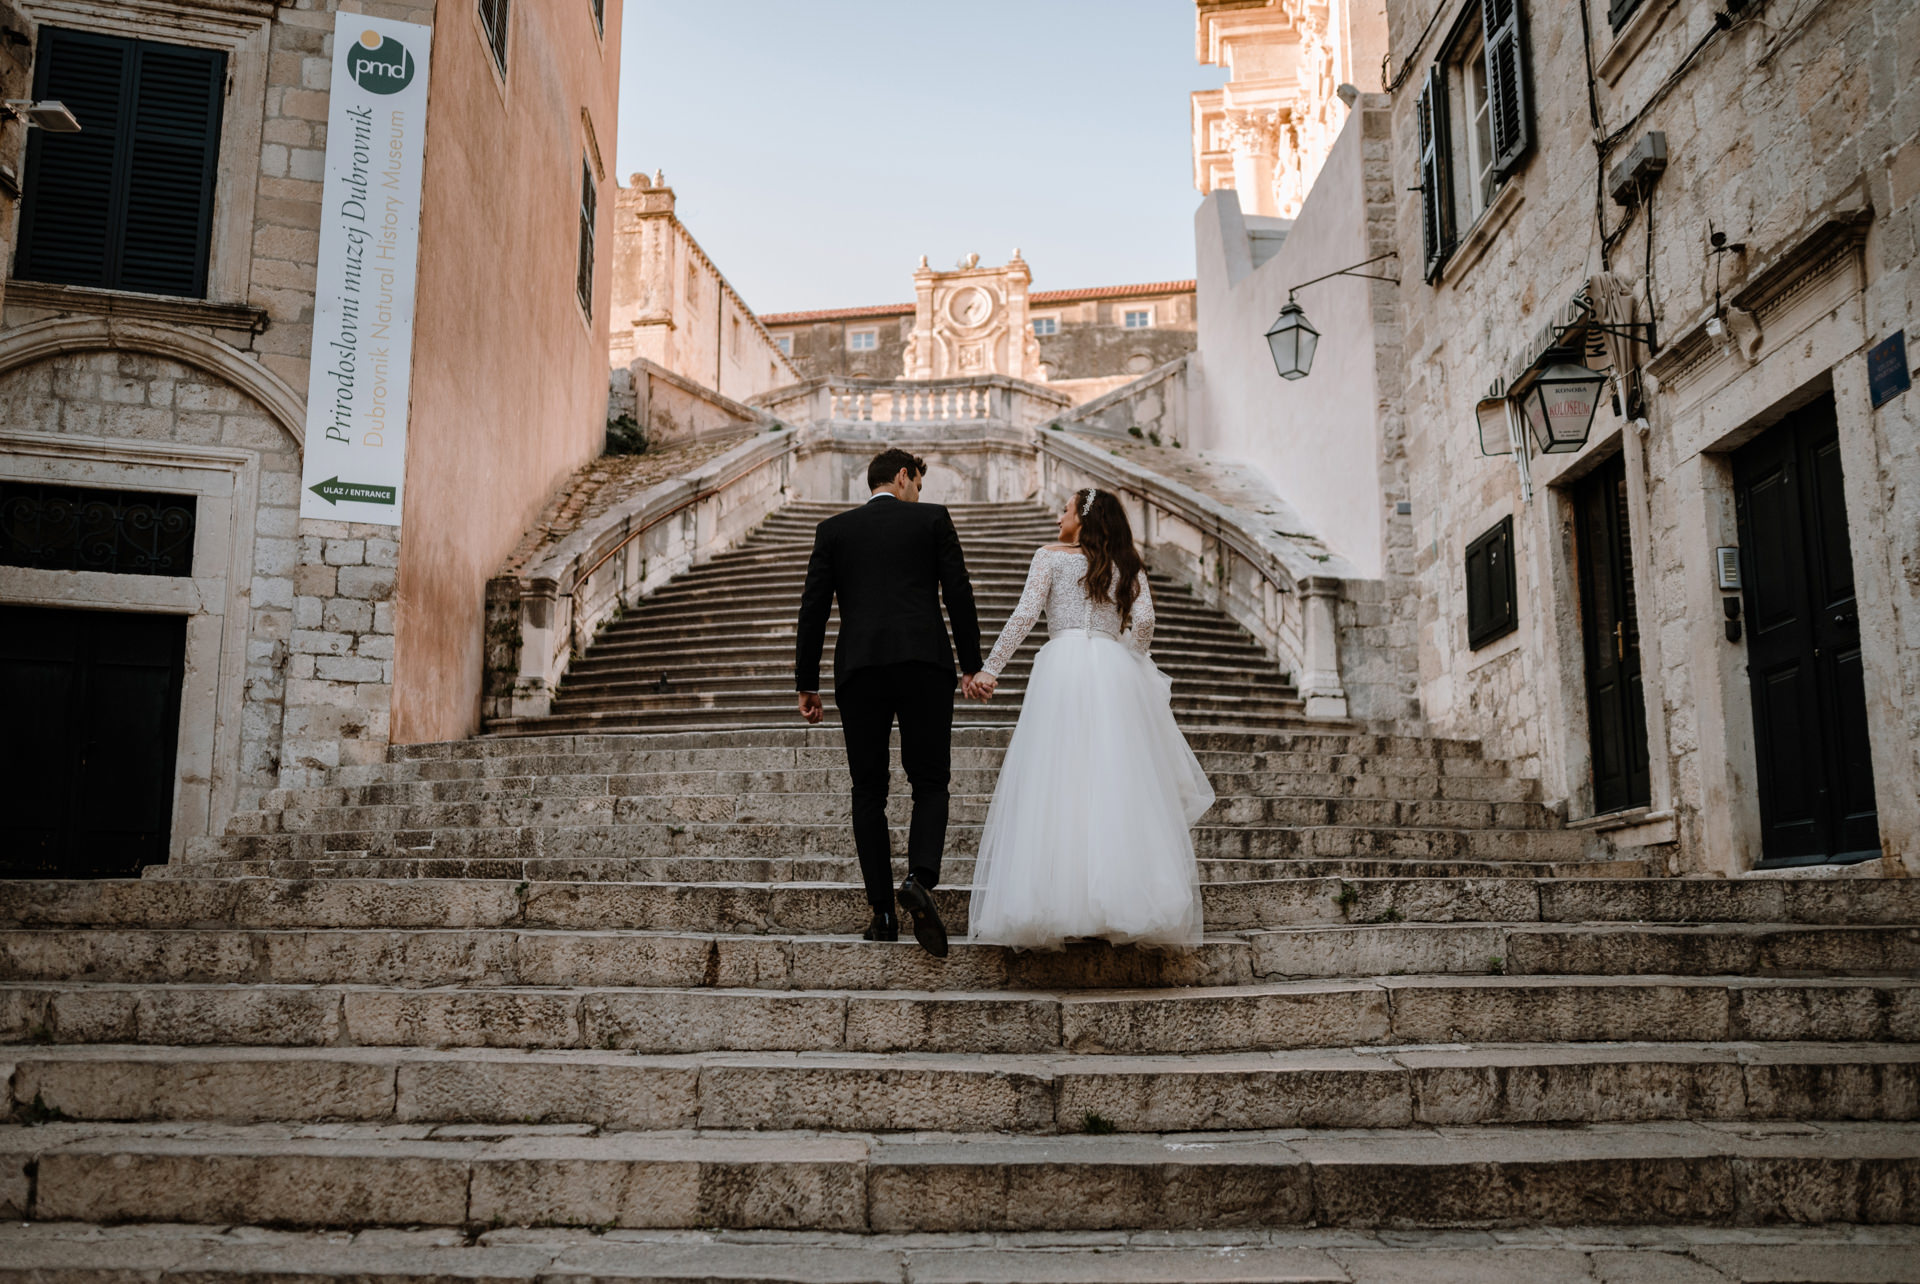 bride and groom walking staircase popular from game of thrones seasson five